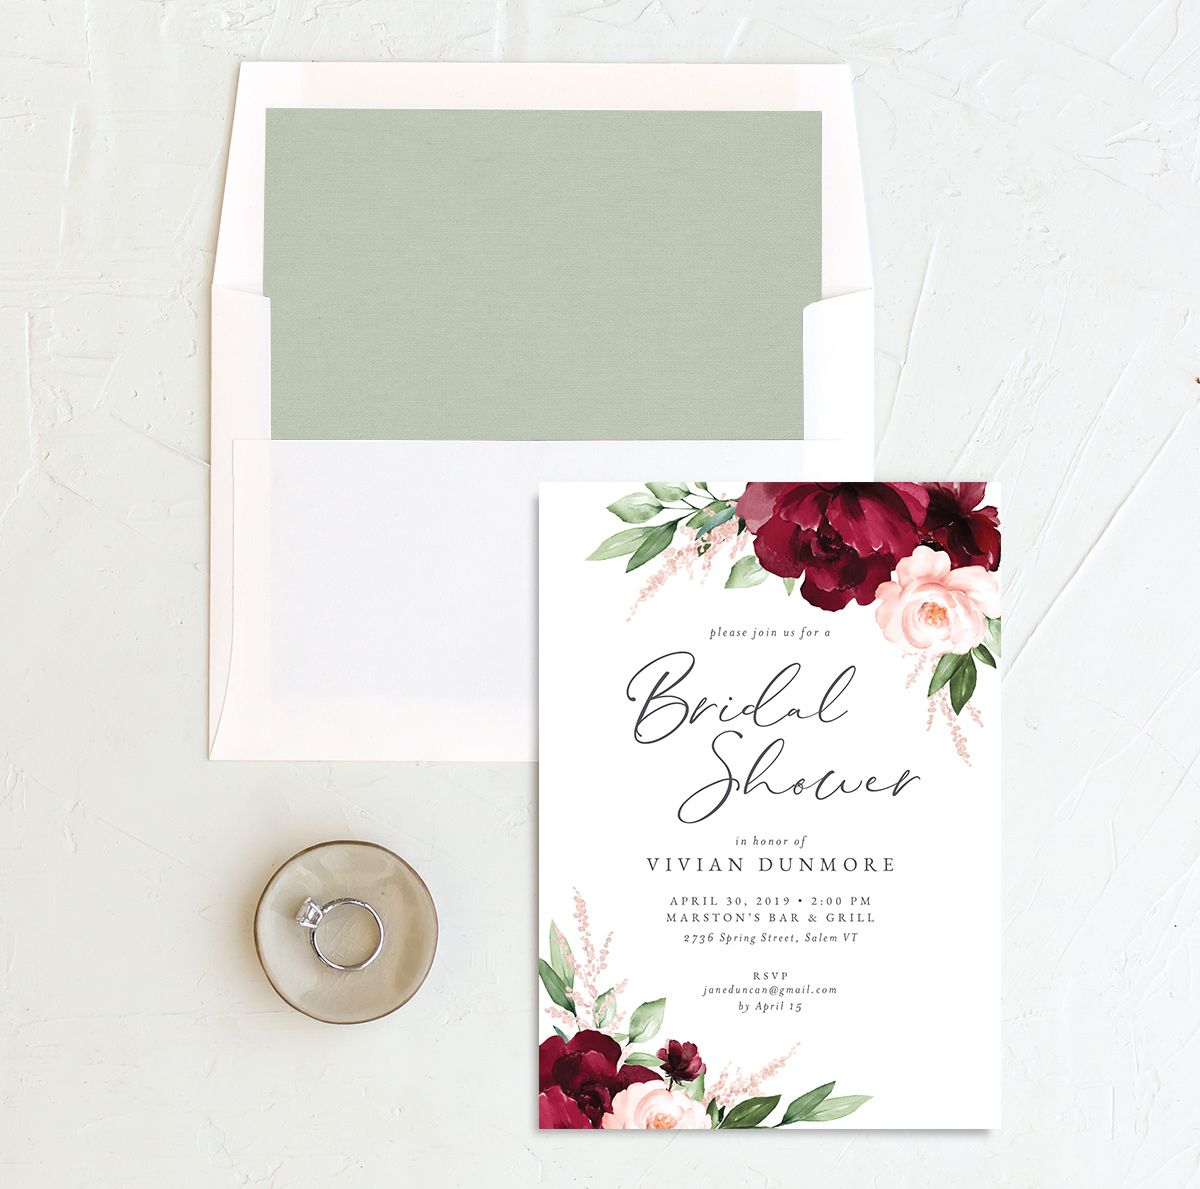 Beloved Floral Bridal Shower Invitation with DIY liner in red